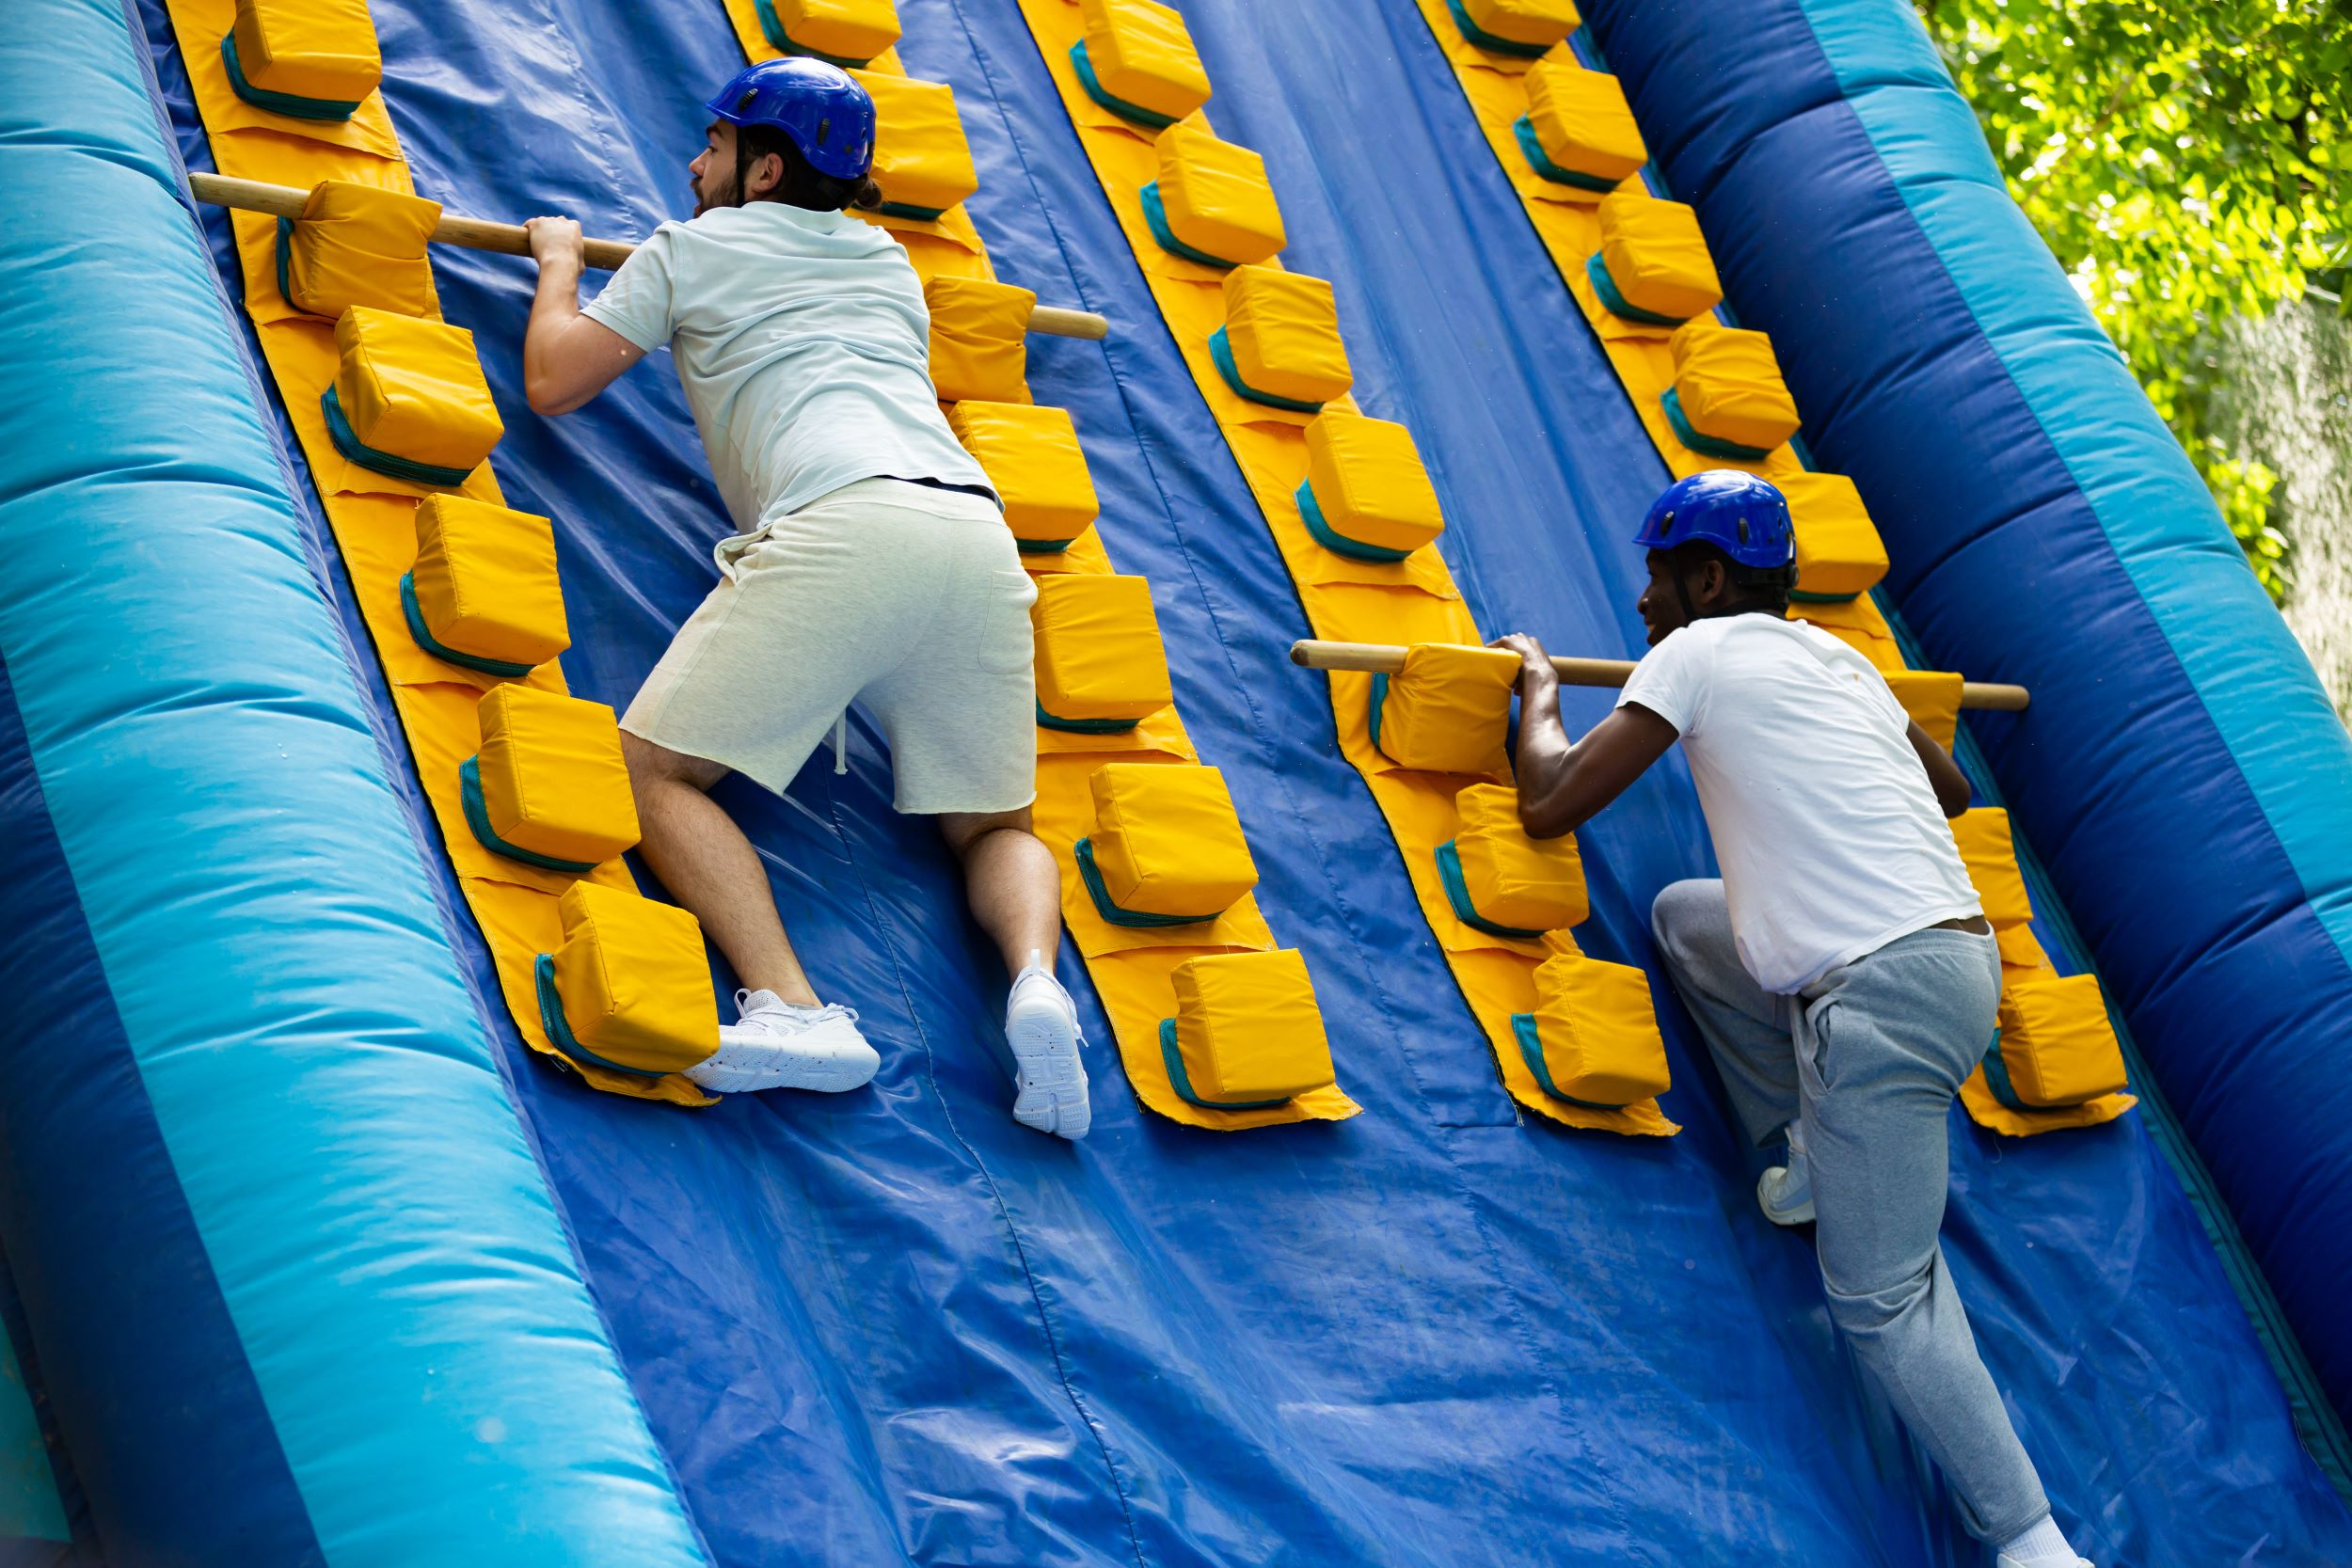 Inflatables Small.jpg